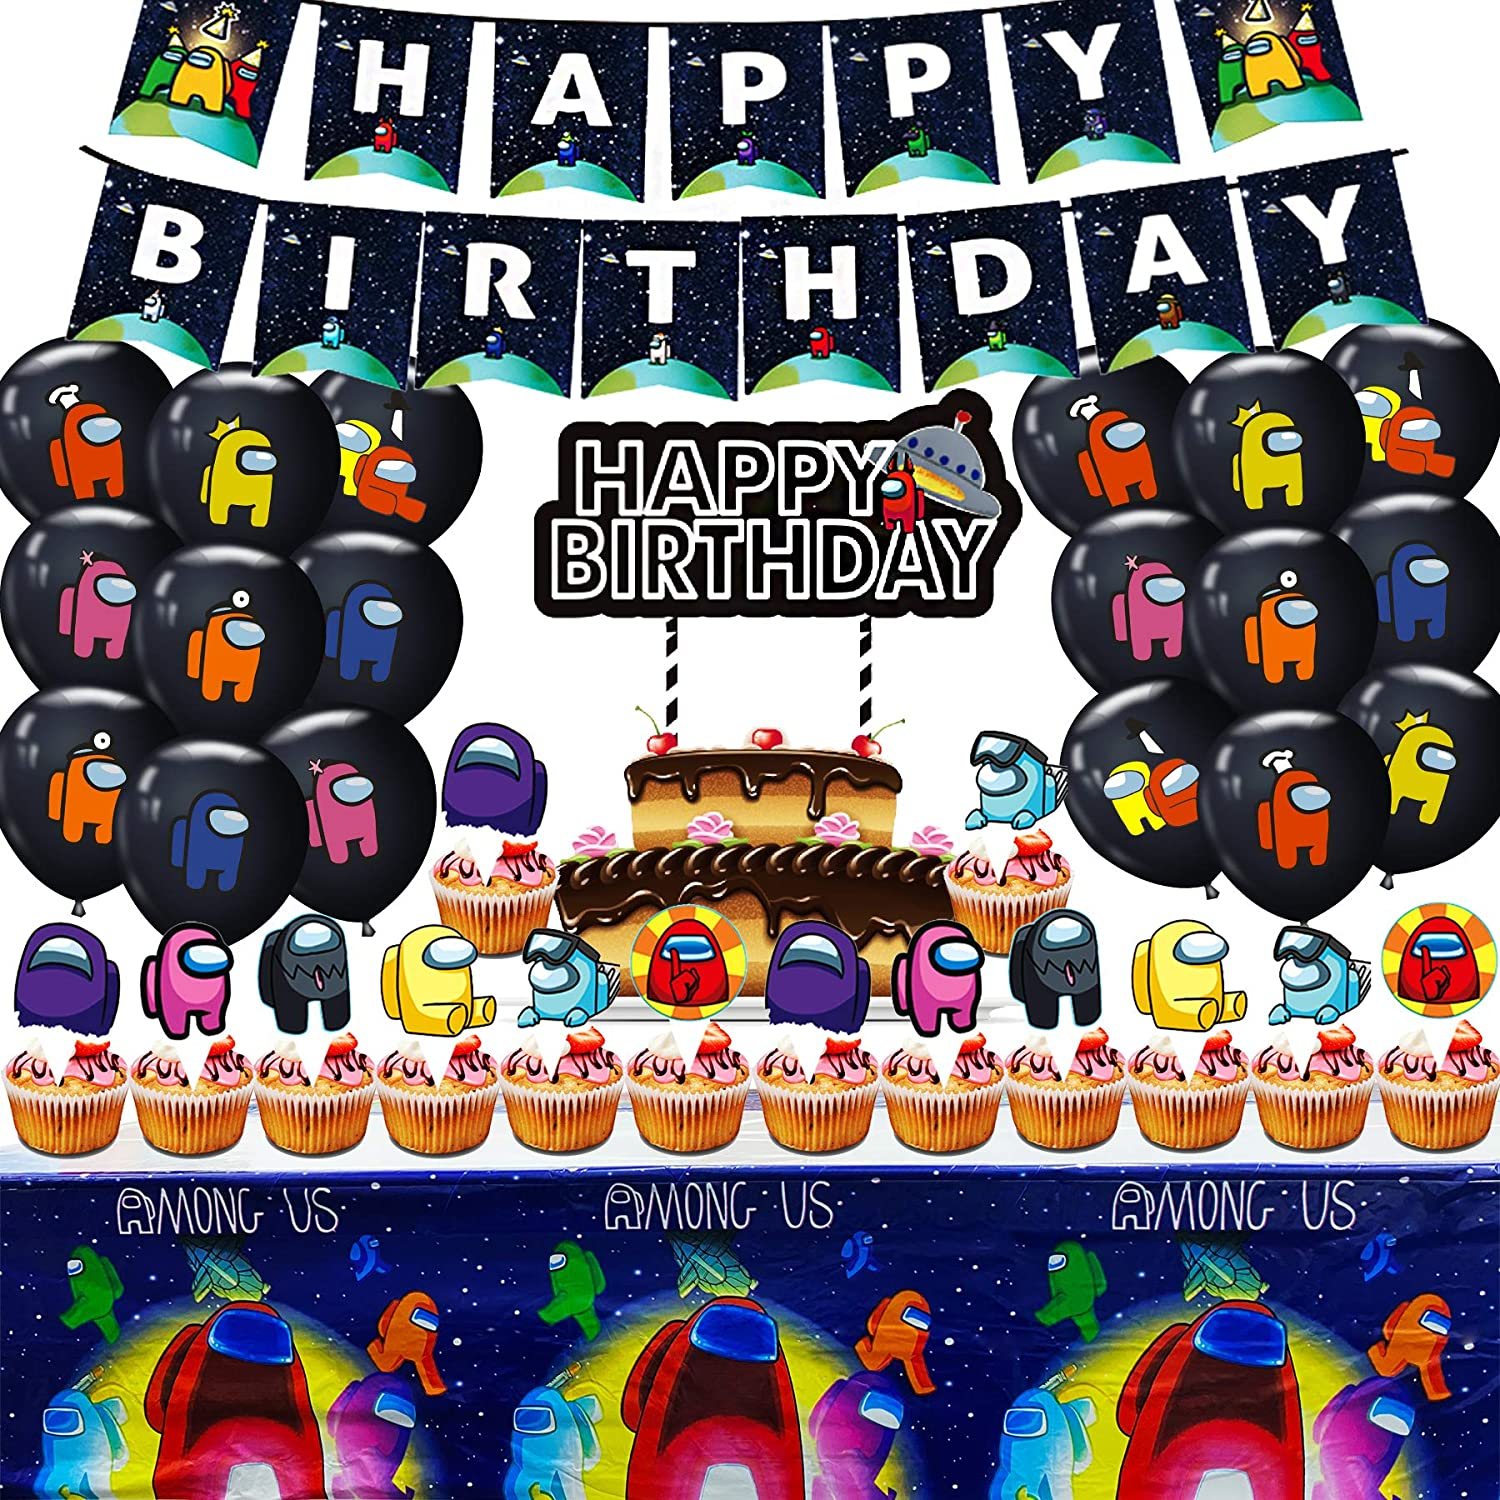 Banner and Balloons 30Pcs Among Us Birthday Party Decoration Set Cupcake Toppers Party favors for kids//Adults Set Supplies Include Among Us Happy Birthday Cake Topper